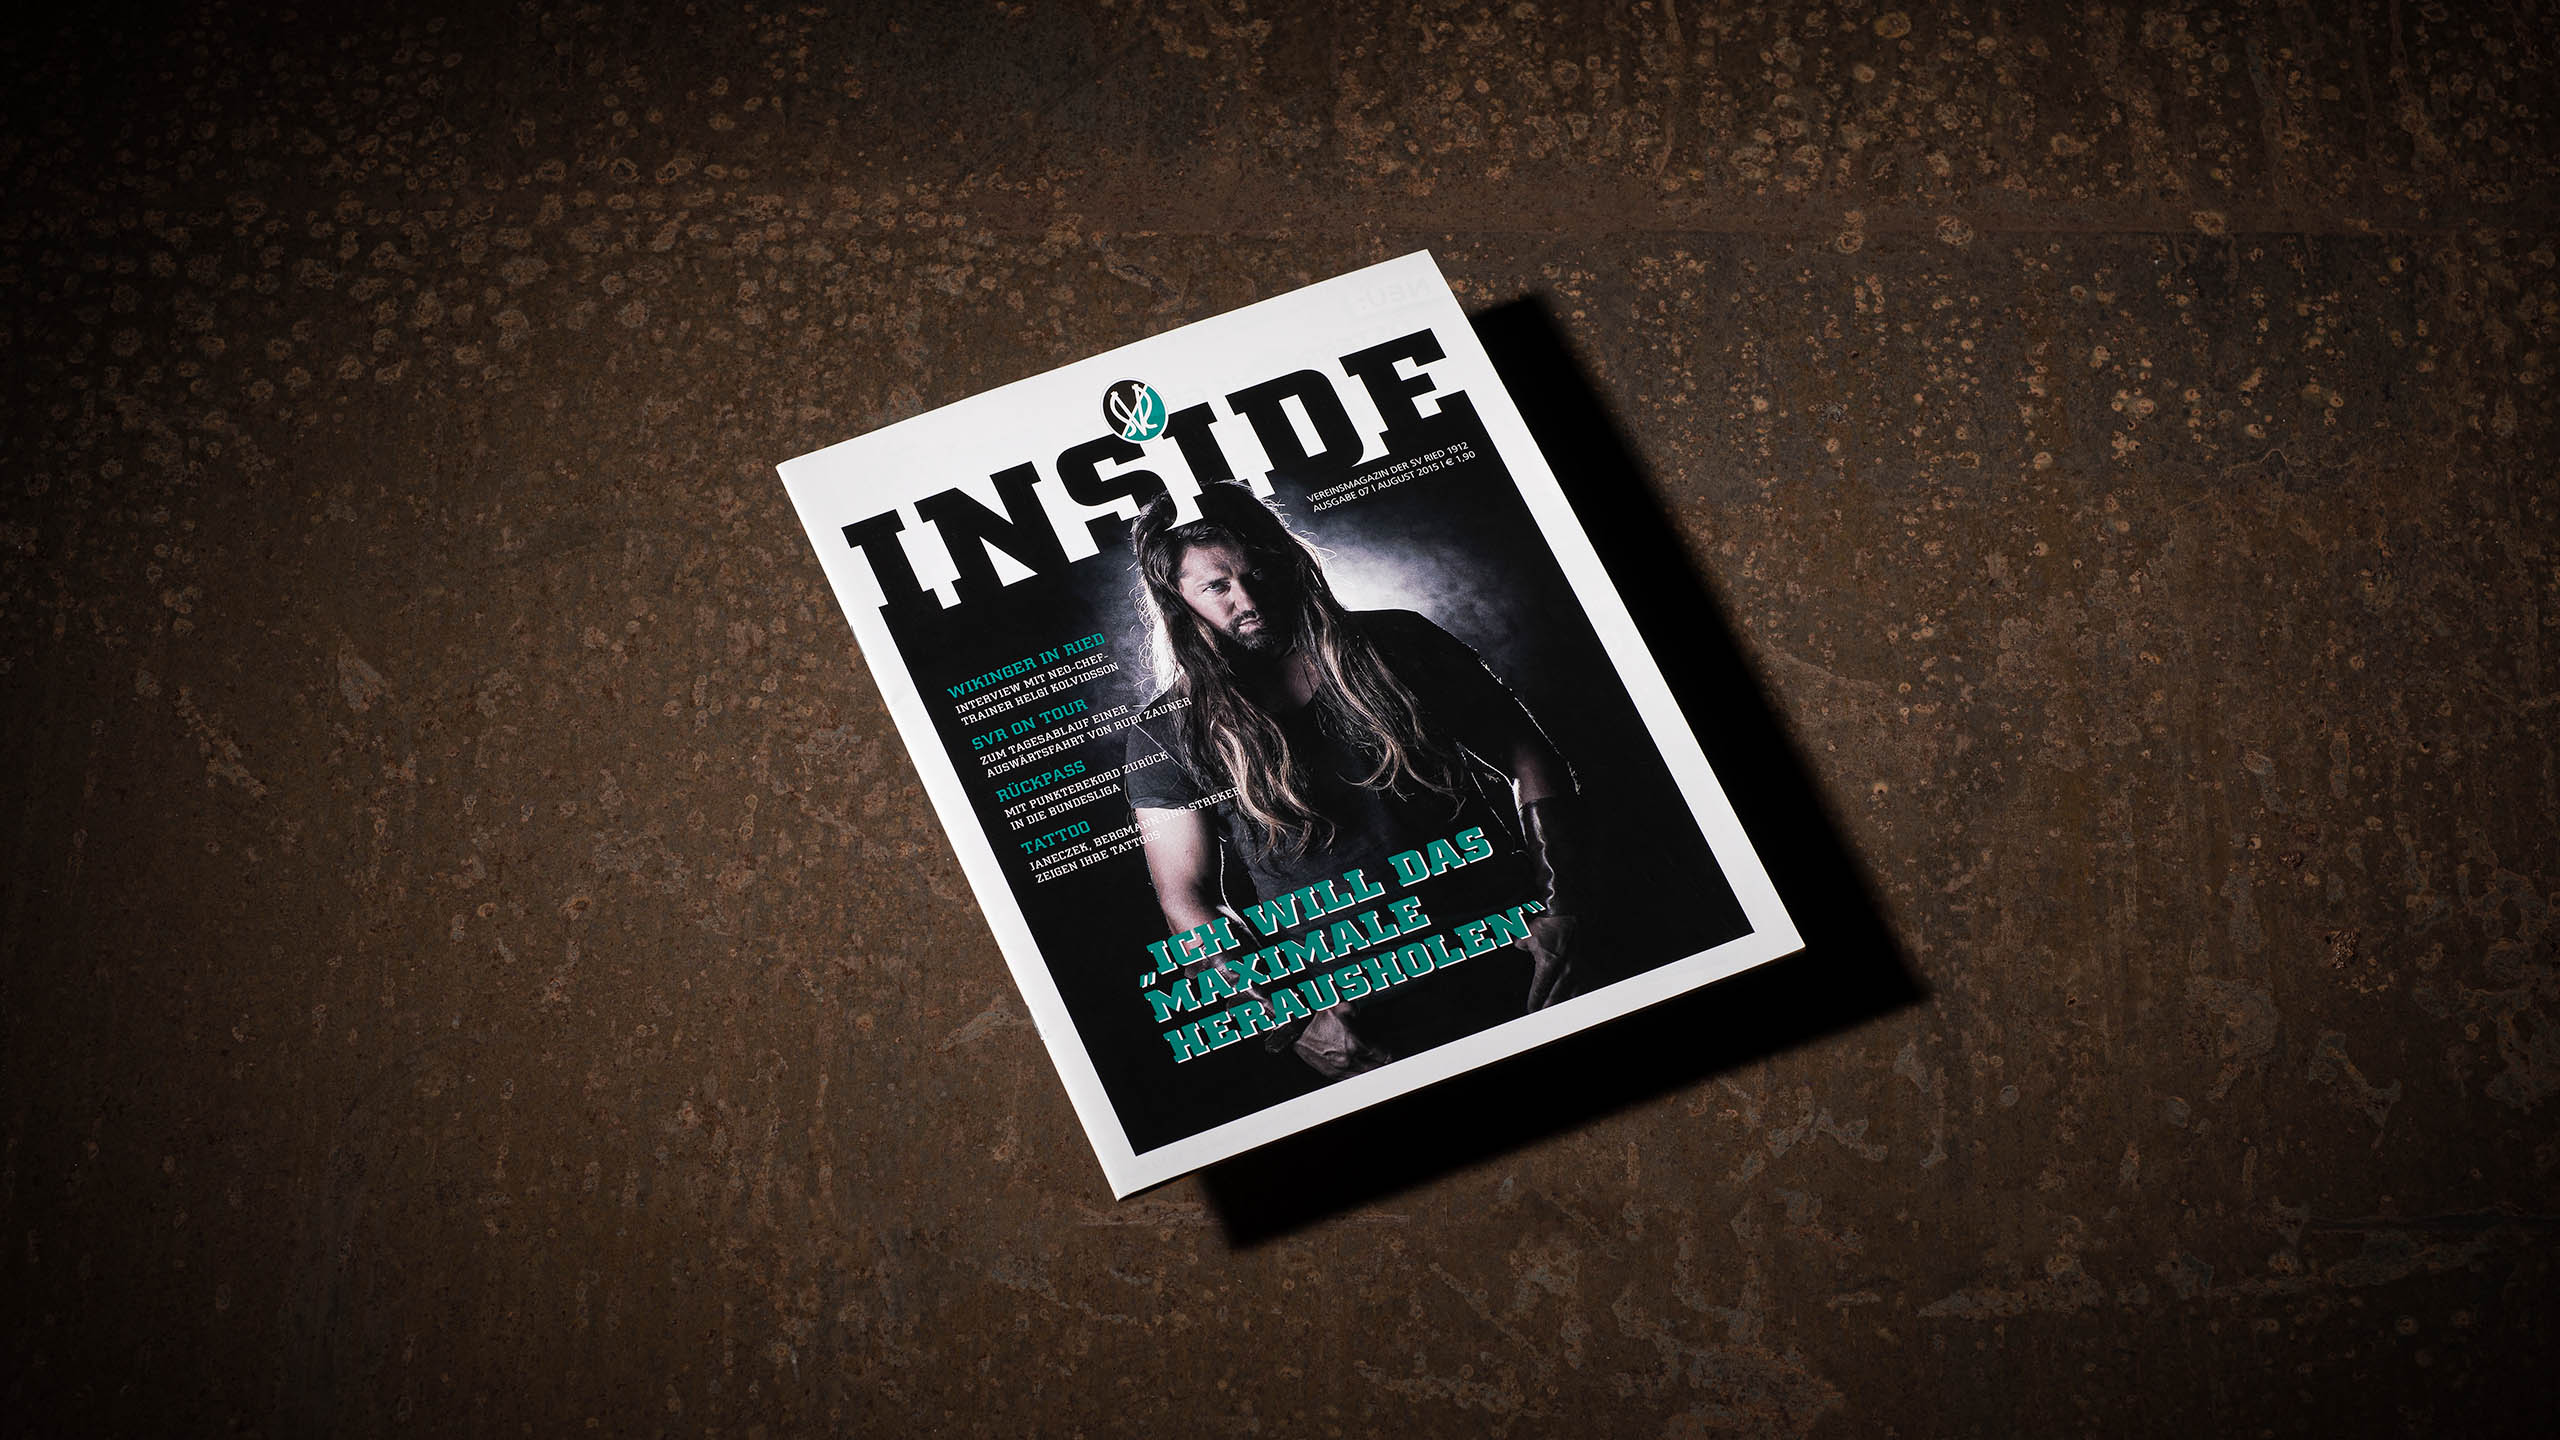 INSIDE_MAGAZINbySchatzl1 » Inside Magazin » Publications